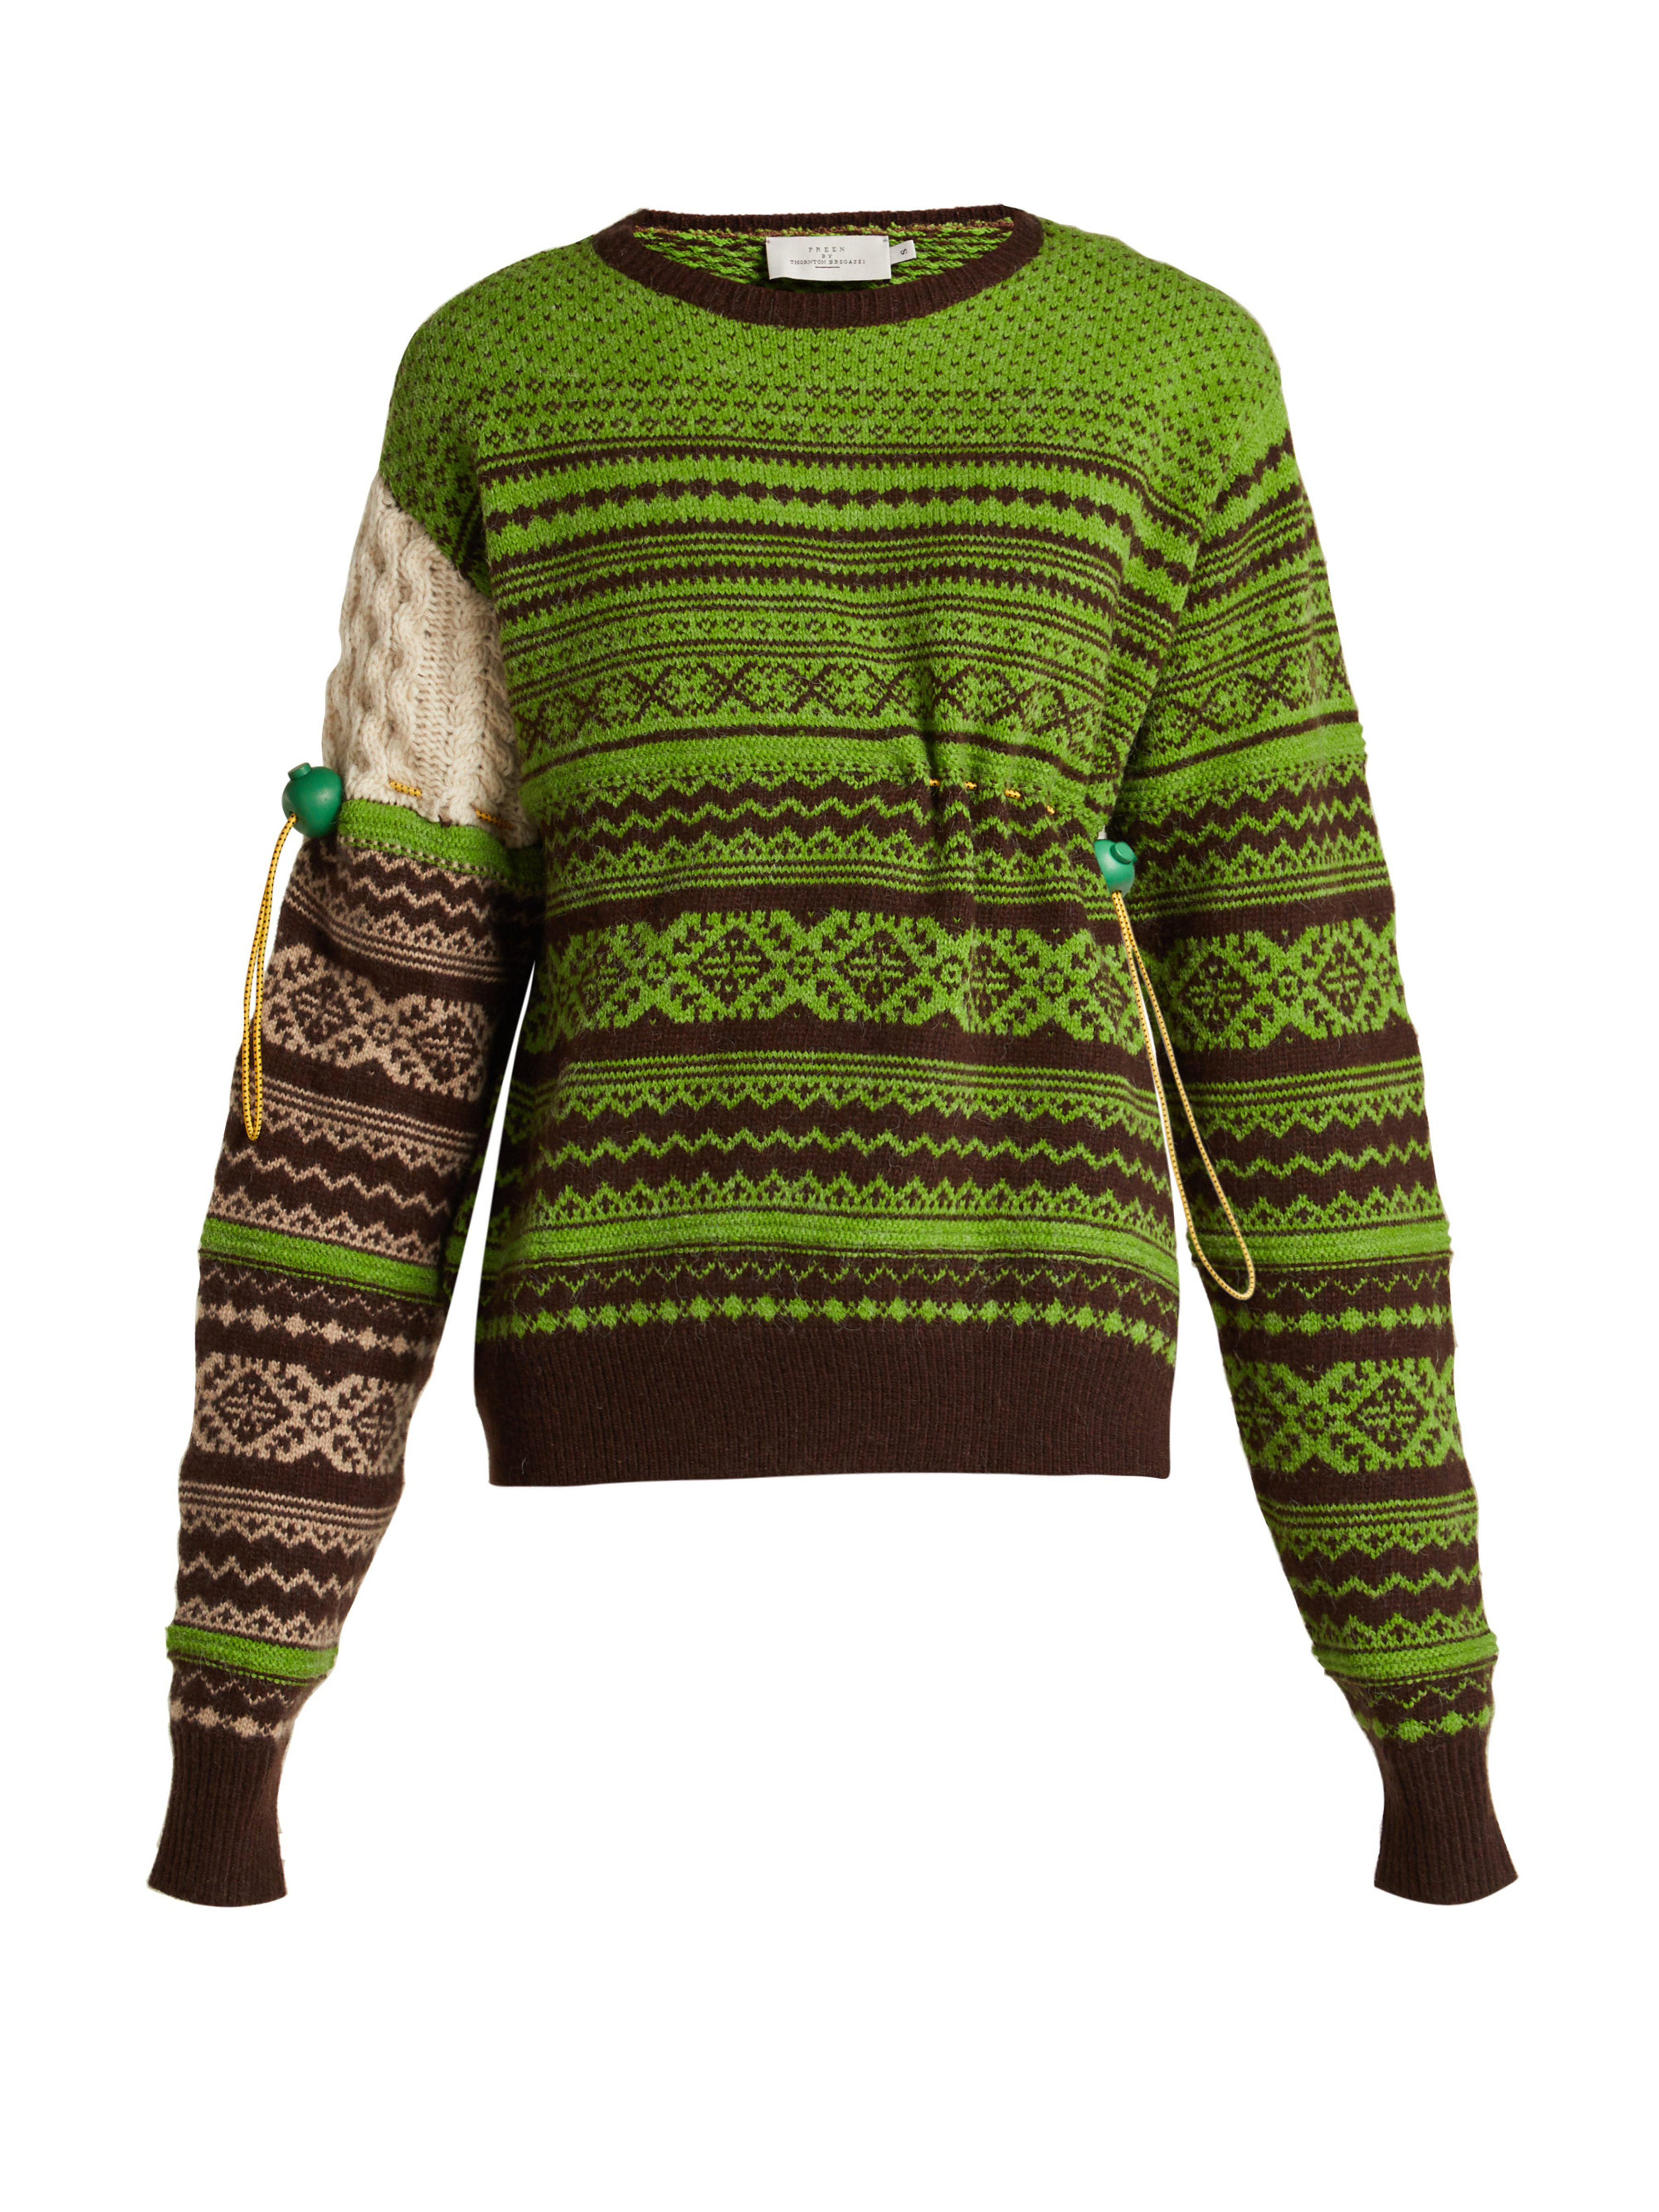 ca9323a8cc Preen By Thornton Bregazzi Moira Fair Isle Knit Wool Blend Sweater in Green  - Save 52% - Lyst